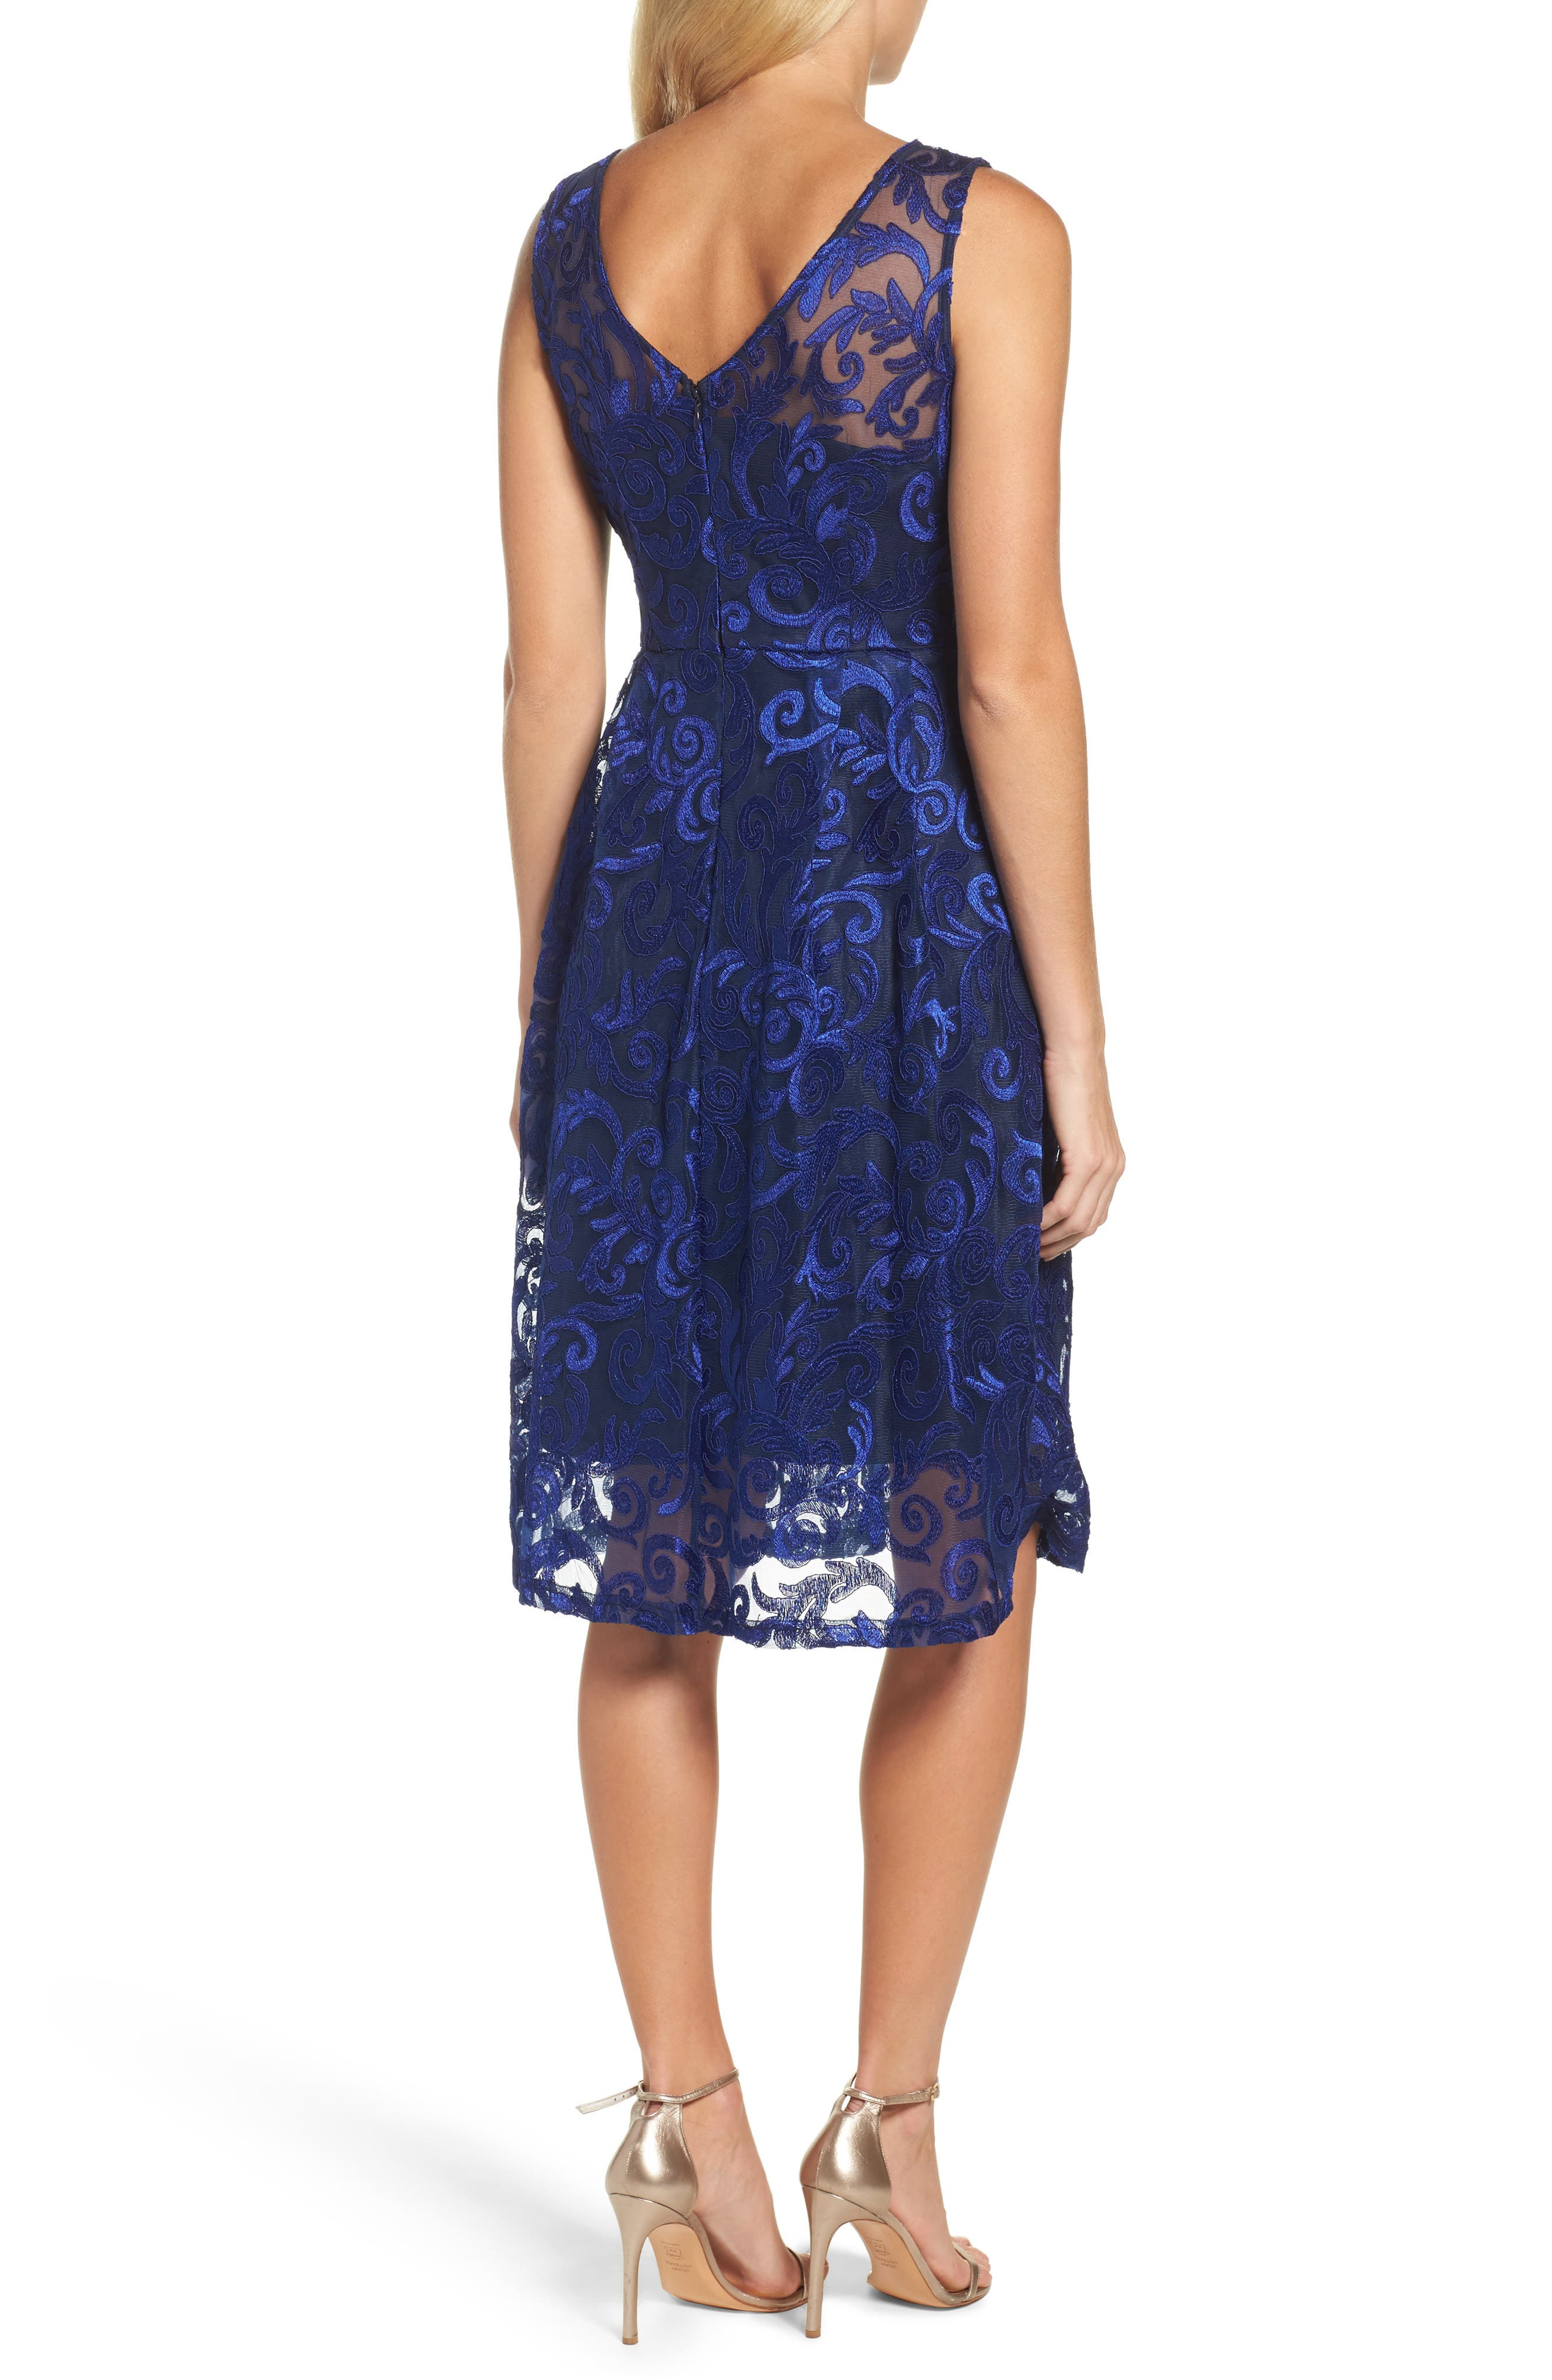 Floral Scroll Embroidered Cocktail Dress,                             Alternate thumbnail 2, color,                             430